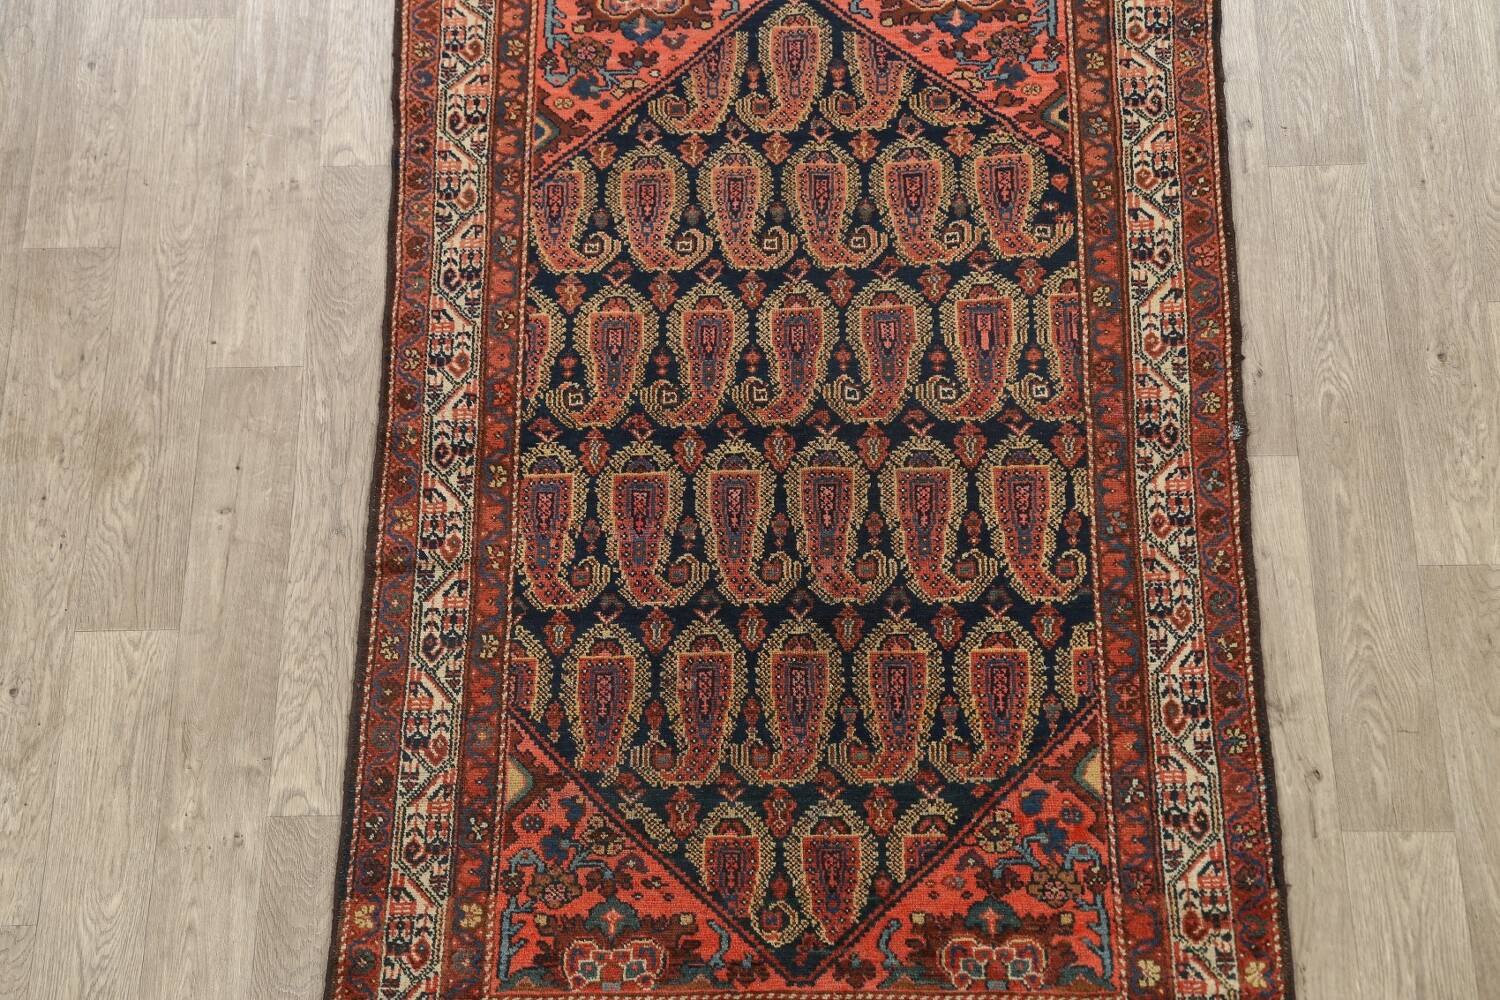 Antique All-Over Malayer Persian Area Rug 4x7 image 3